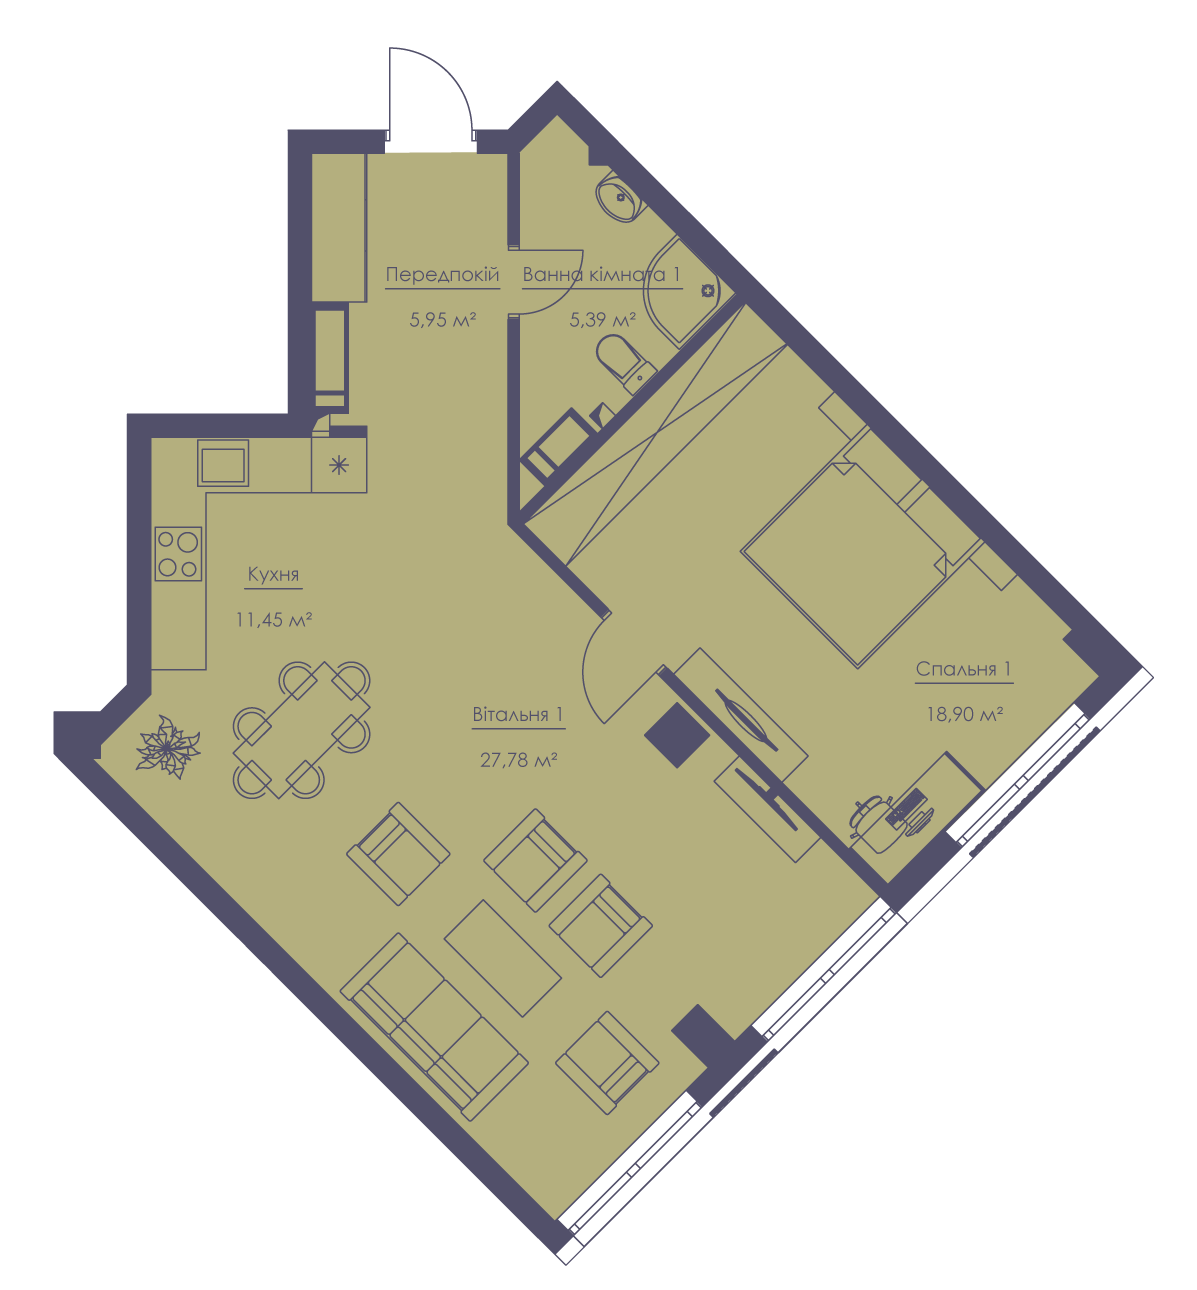 Apartment layout KV_58_2a_1_1_1-1